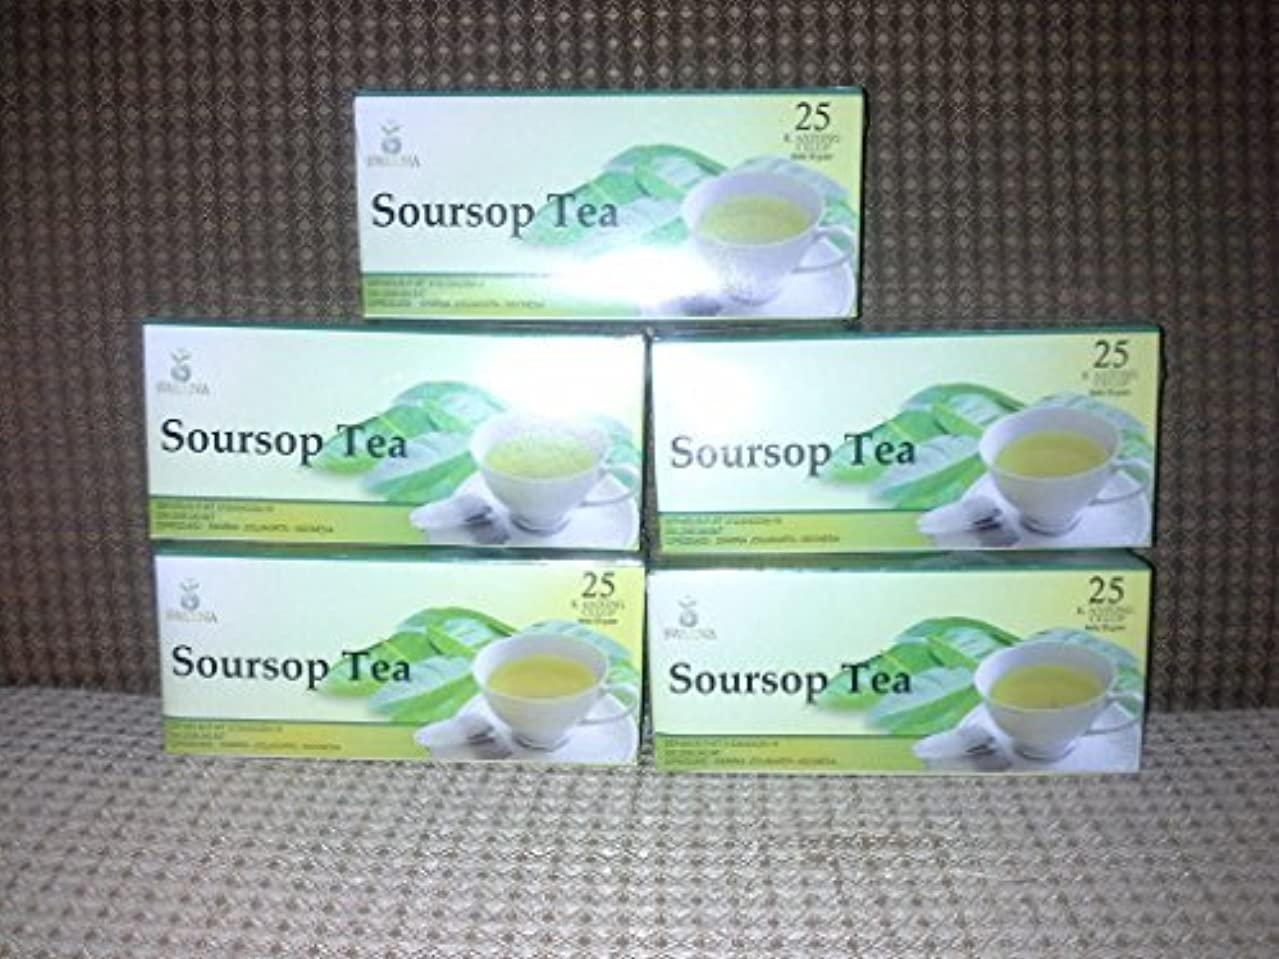 放棄アナニバー良さGraviola /Soursop Leaves Tea Extract Natural, 3 Box X 25 Teabags = 75 Teabags by Swarna Soursop Tea [並行輸入品]